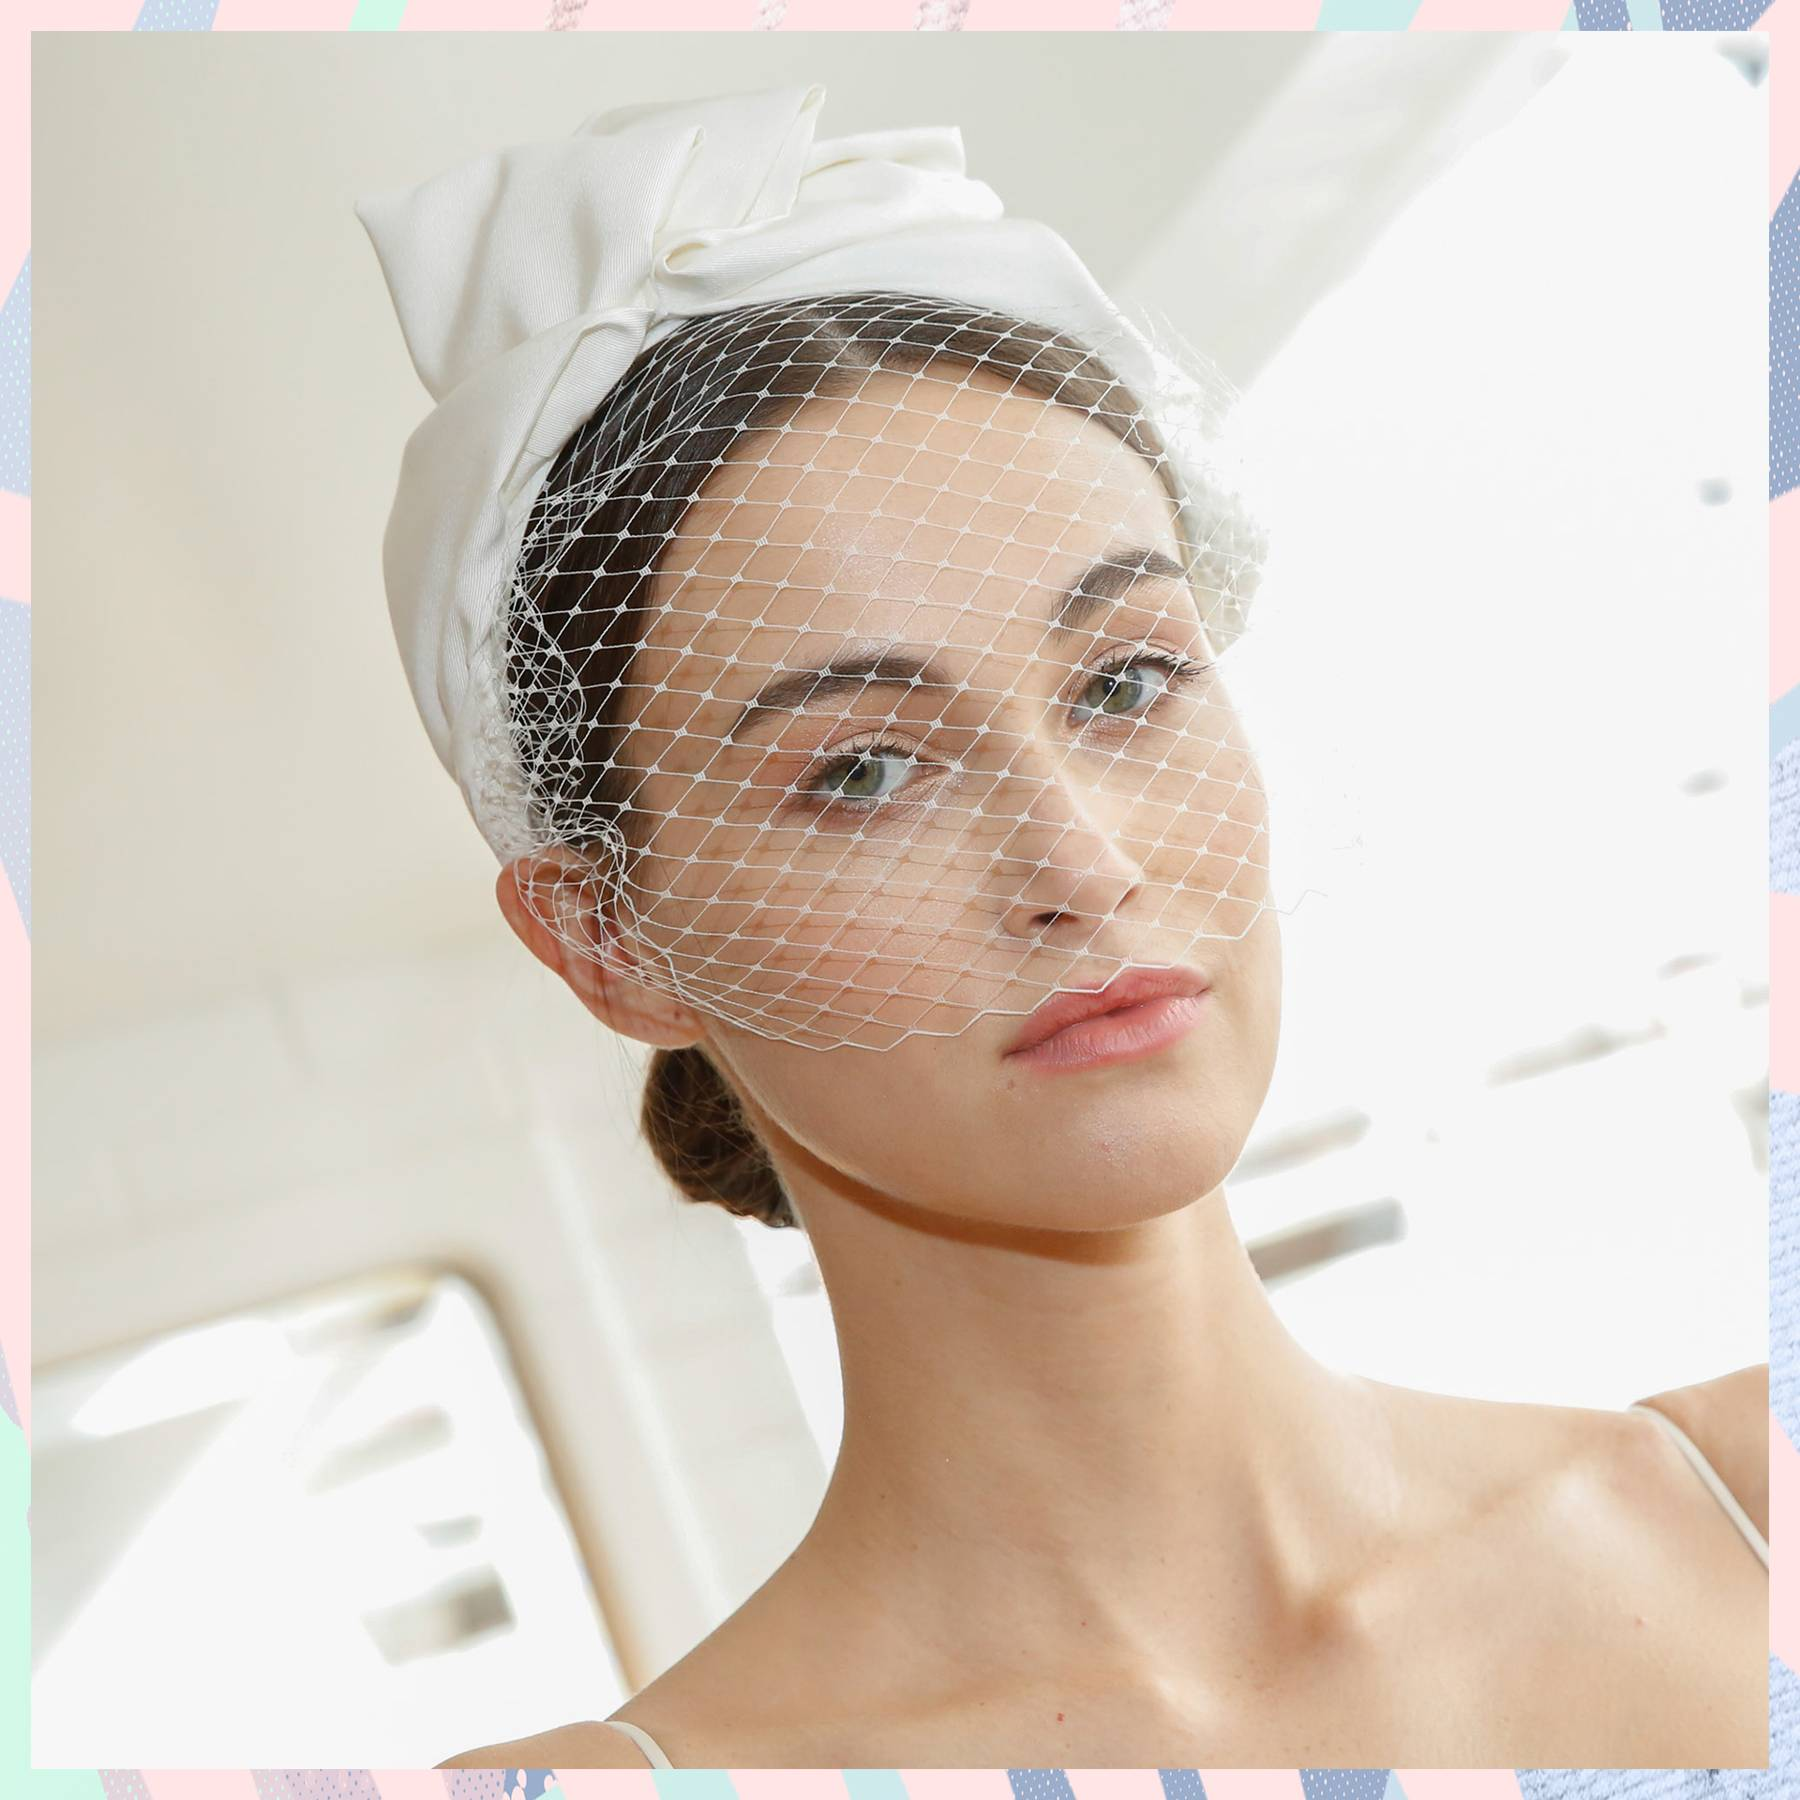 Our little white book of all things bridal beauty from the editor who has tried every pre-wedding treatment going